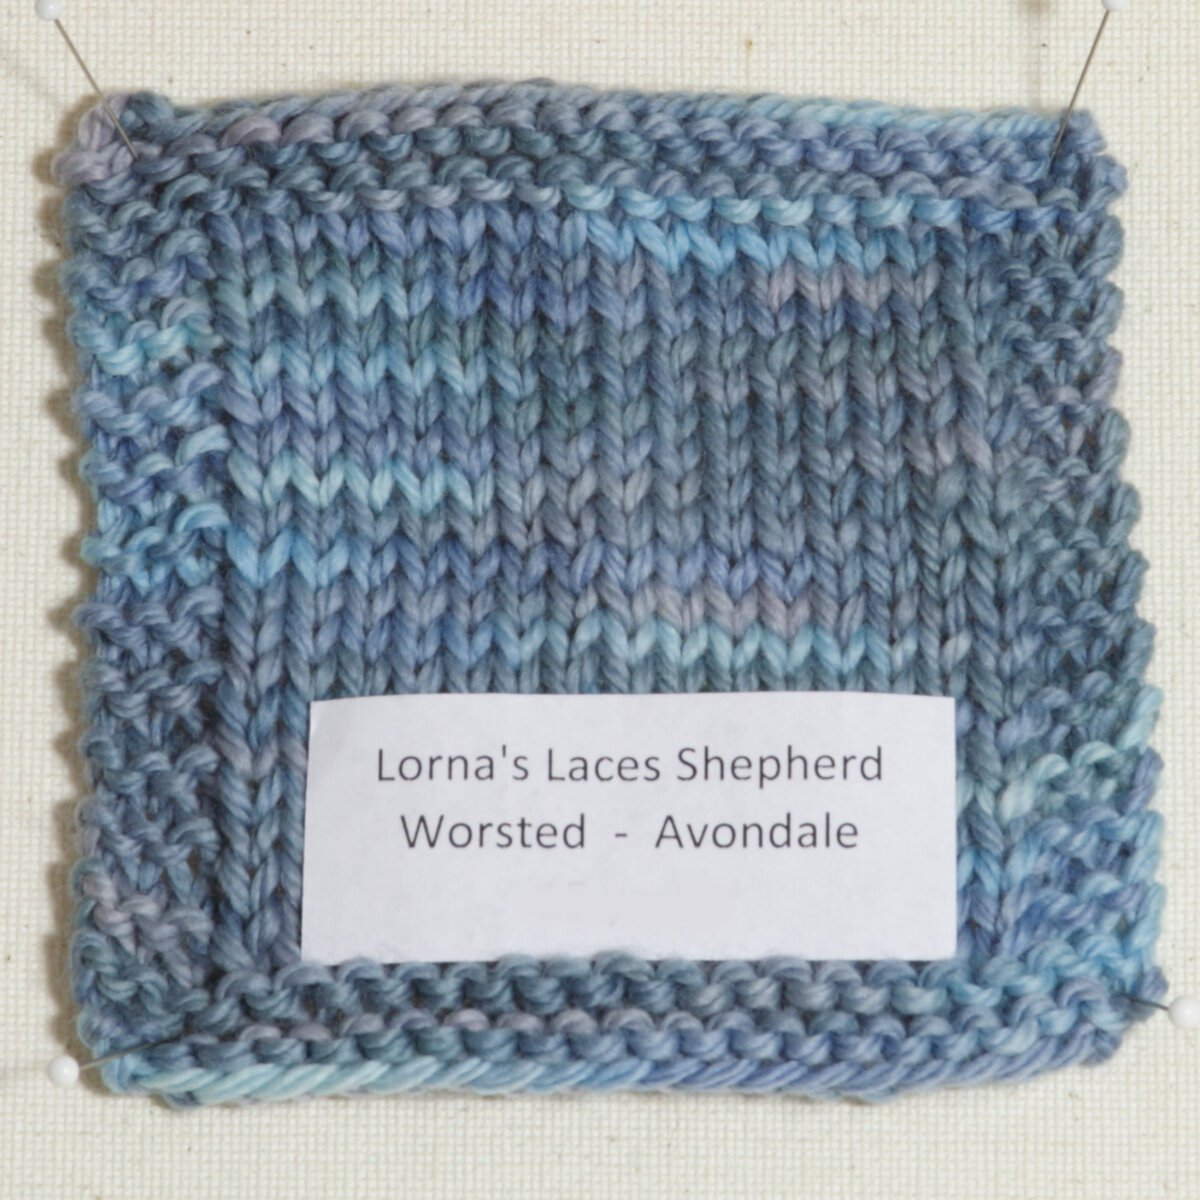 Lornas Laces Shepherd Worsted Samples Yarn Reviews at Jimmy Beans Wool